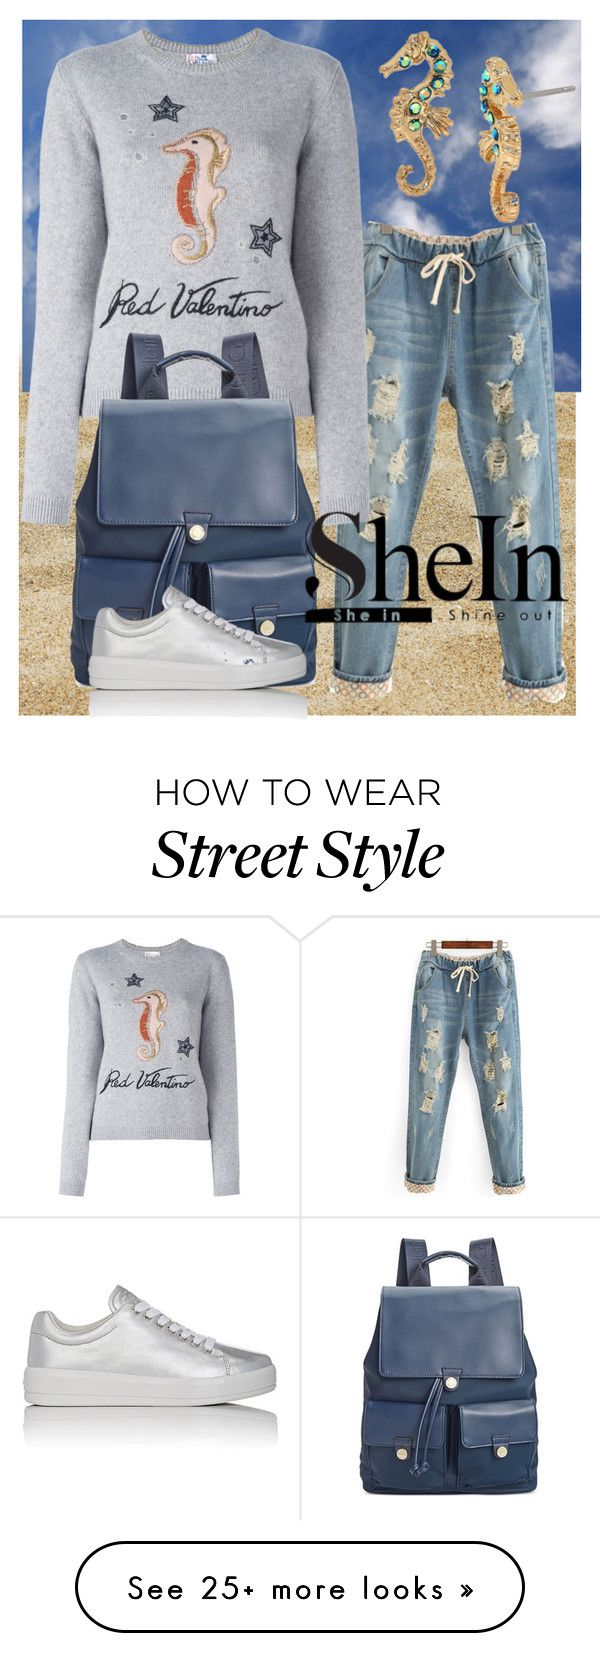 """SheIn Ripped Denim Jeans"" by deborah-calton on Polyvore featuring RED Valentino, Calvin Klein, Prada Sport, Betsey Johnson and shein"